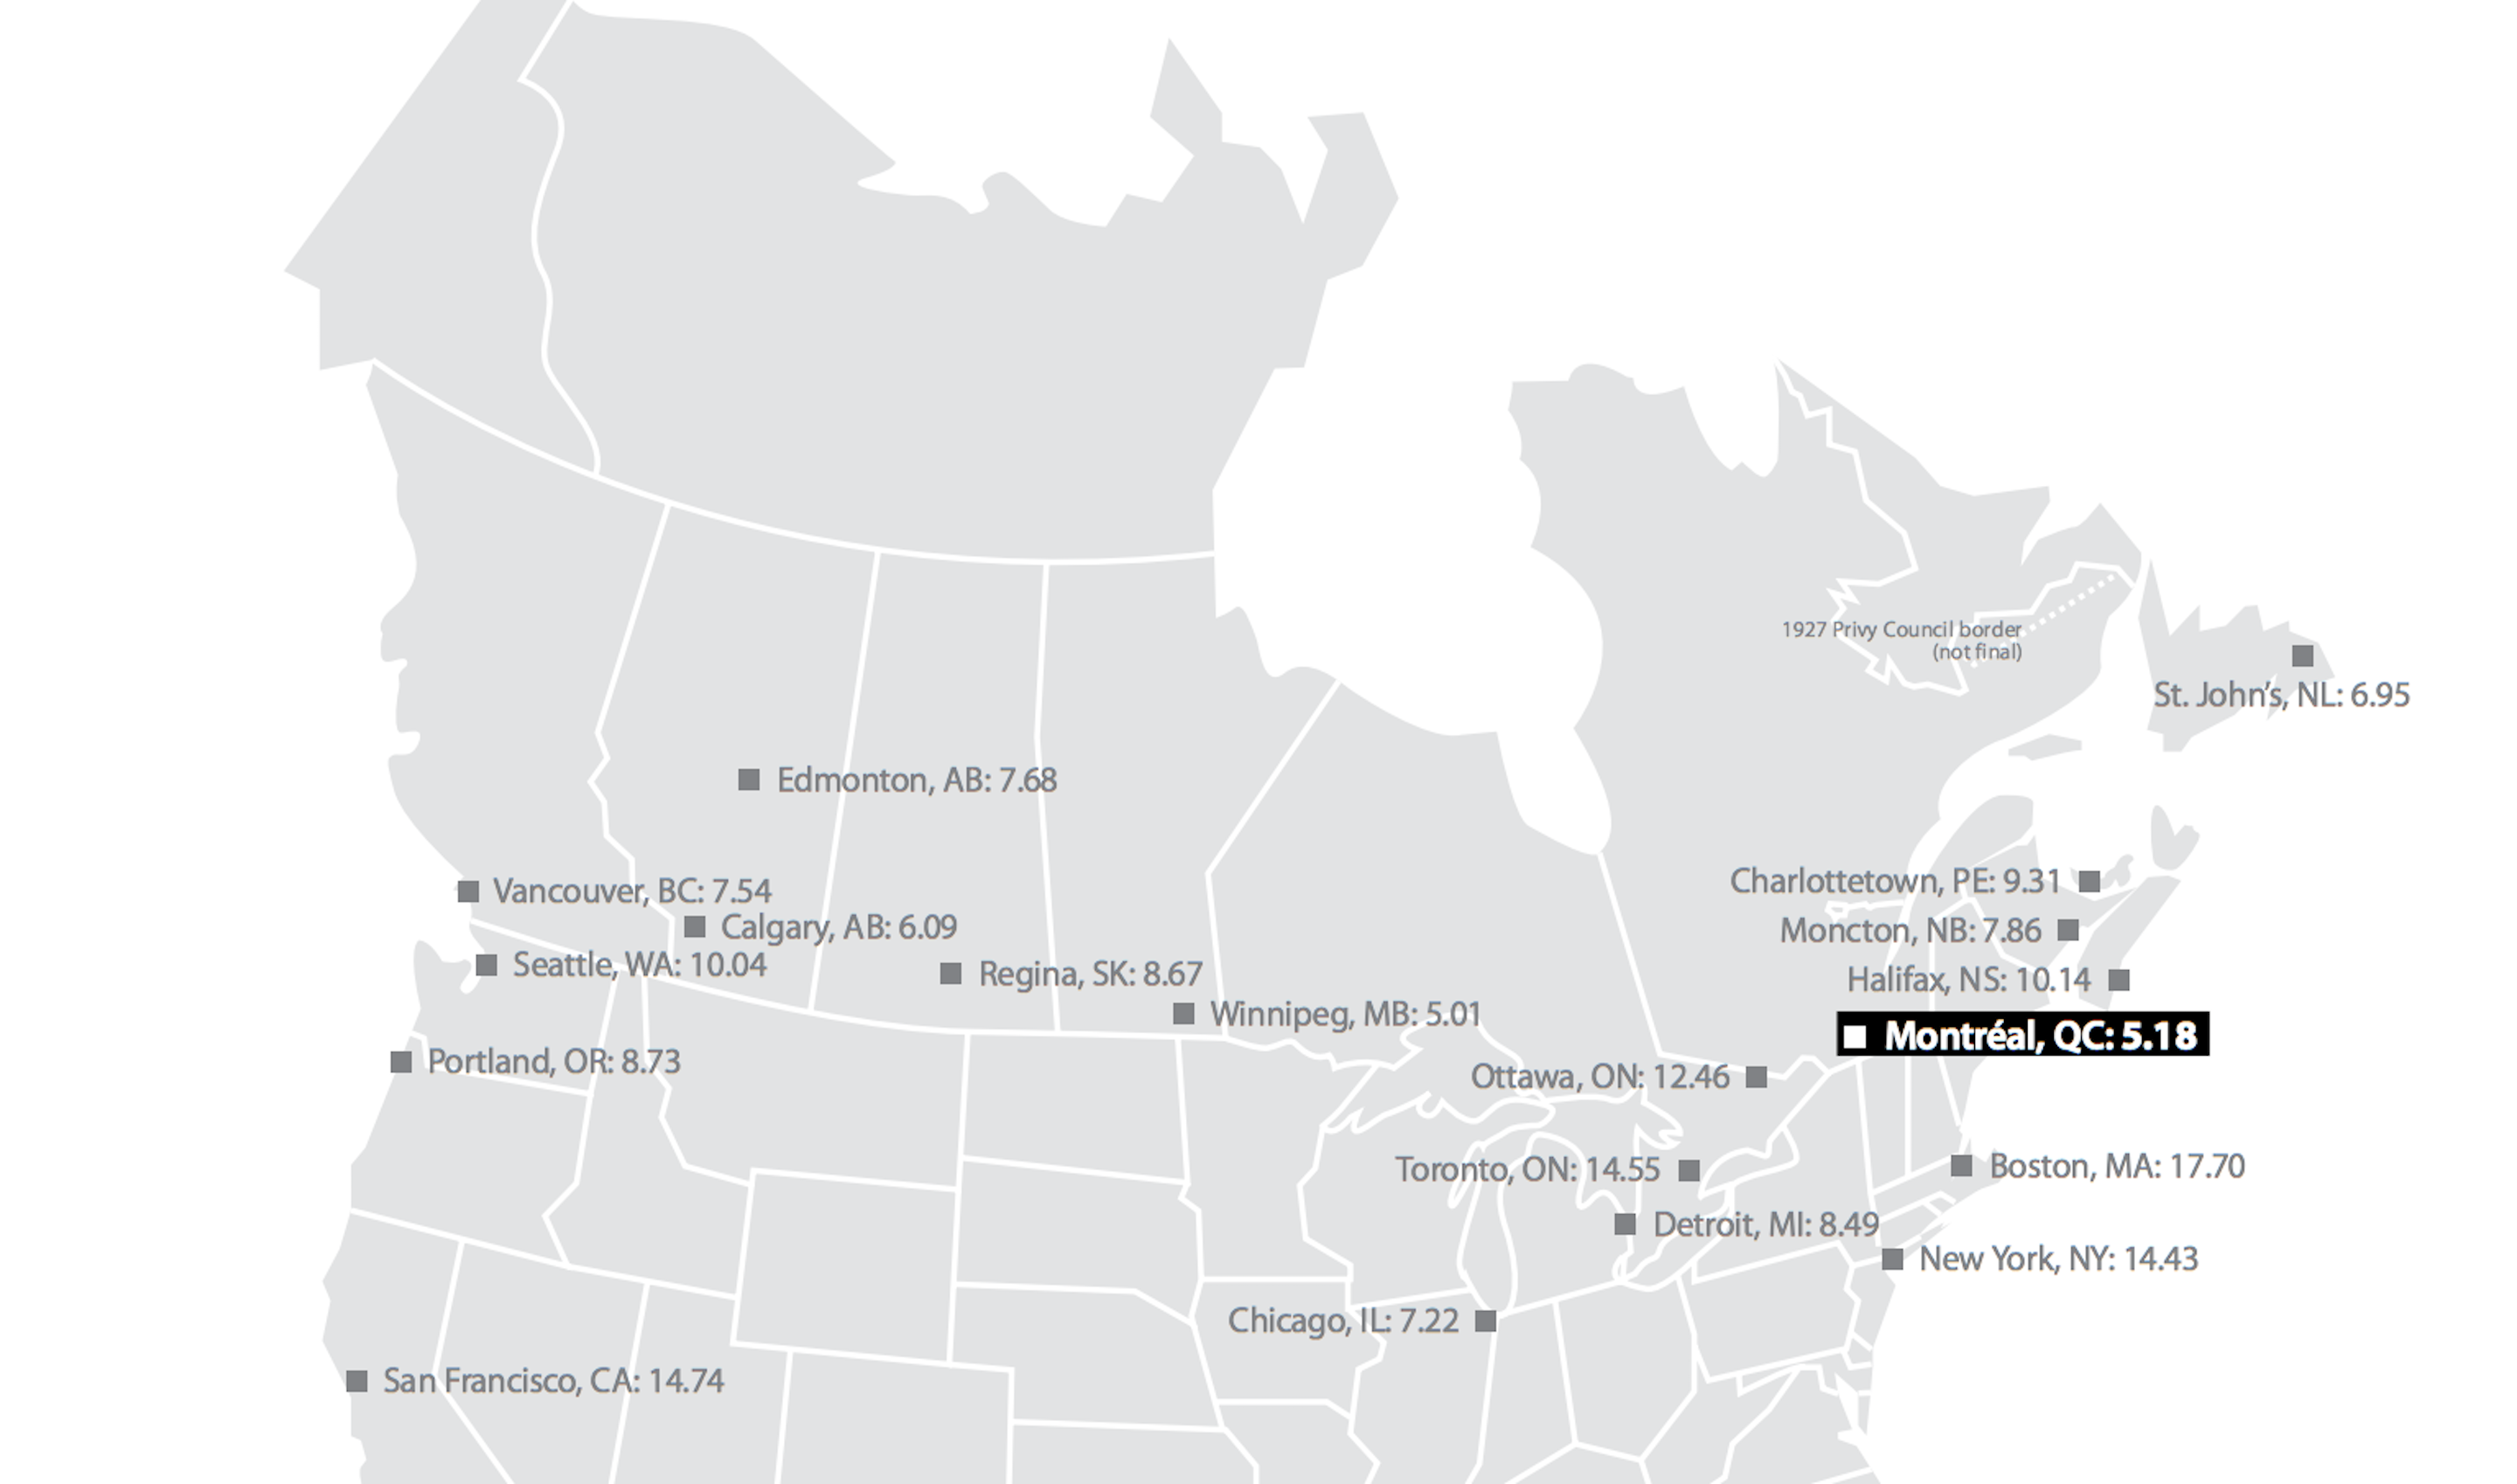 A Comparison of large-power energy prices in North America via Hydro Quebec